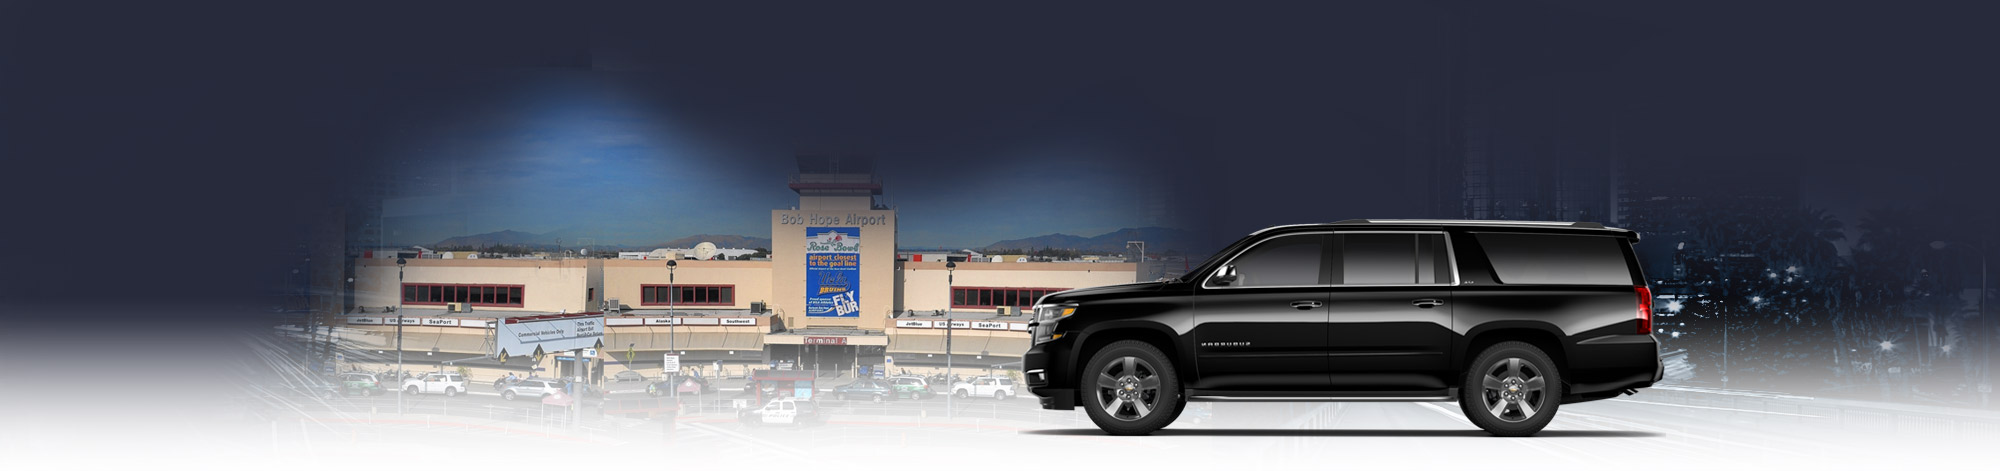 Glendale To Lax Car Service